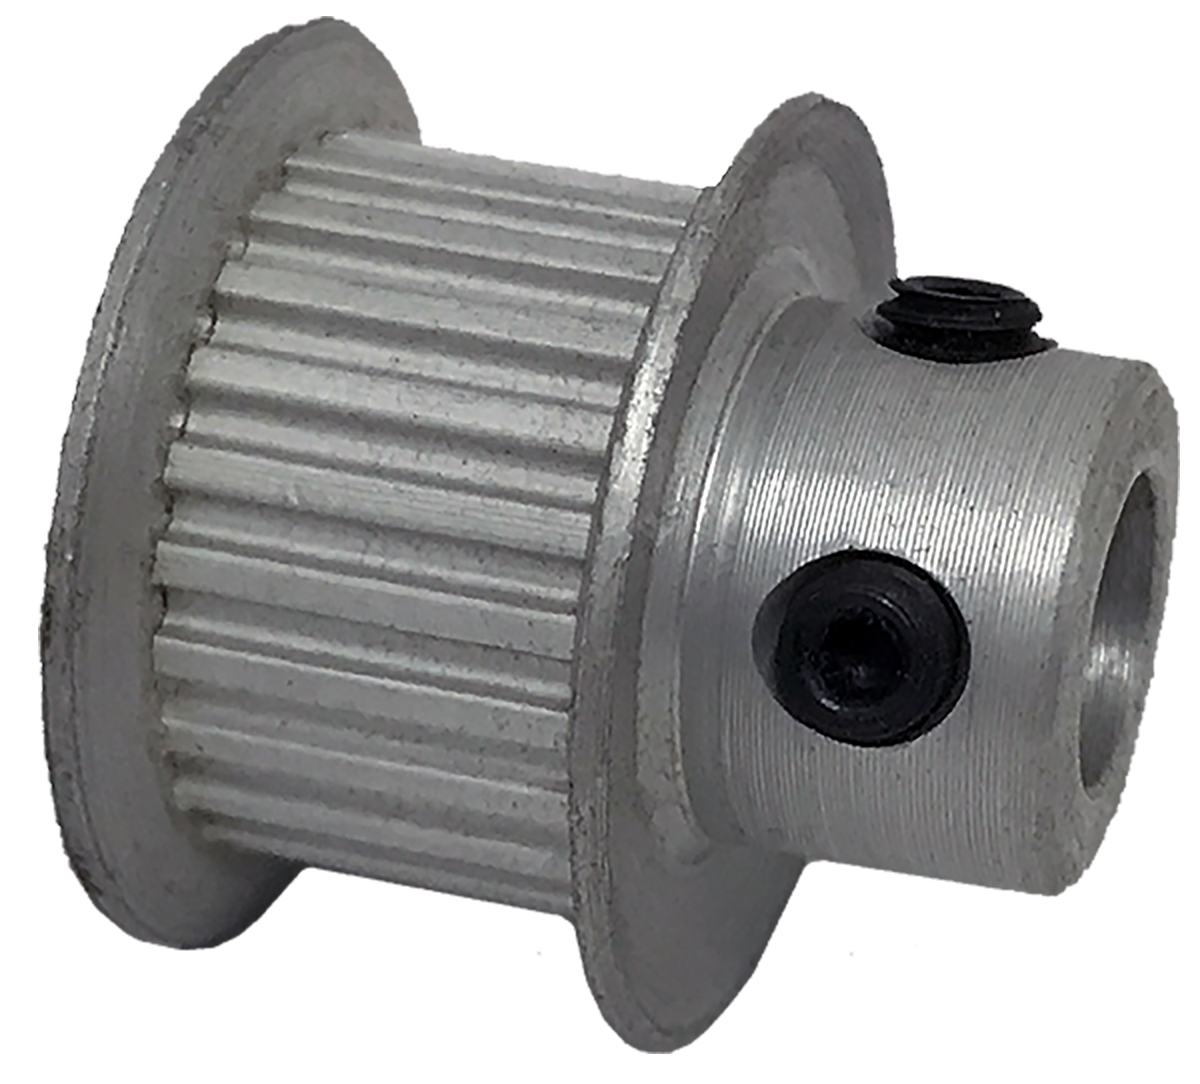 24LT312-6FA3 - Aluminum Imperial Pitch Pulleys